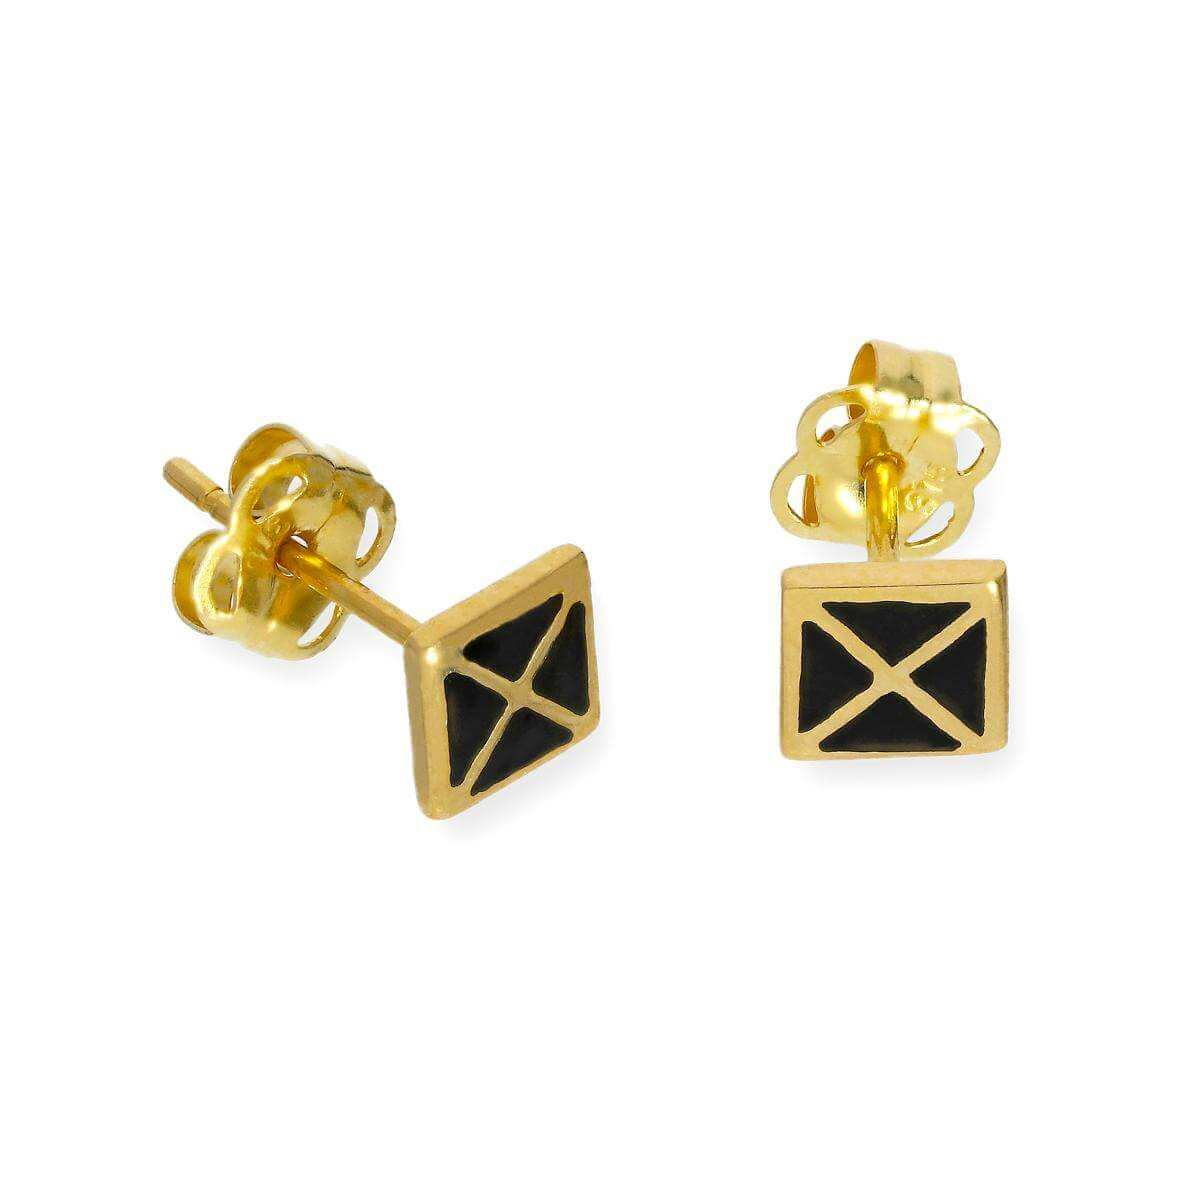 9ct Gold & Black Enamel Square Stud Earrings